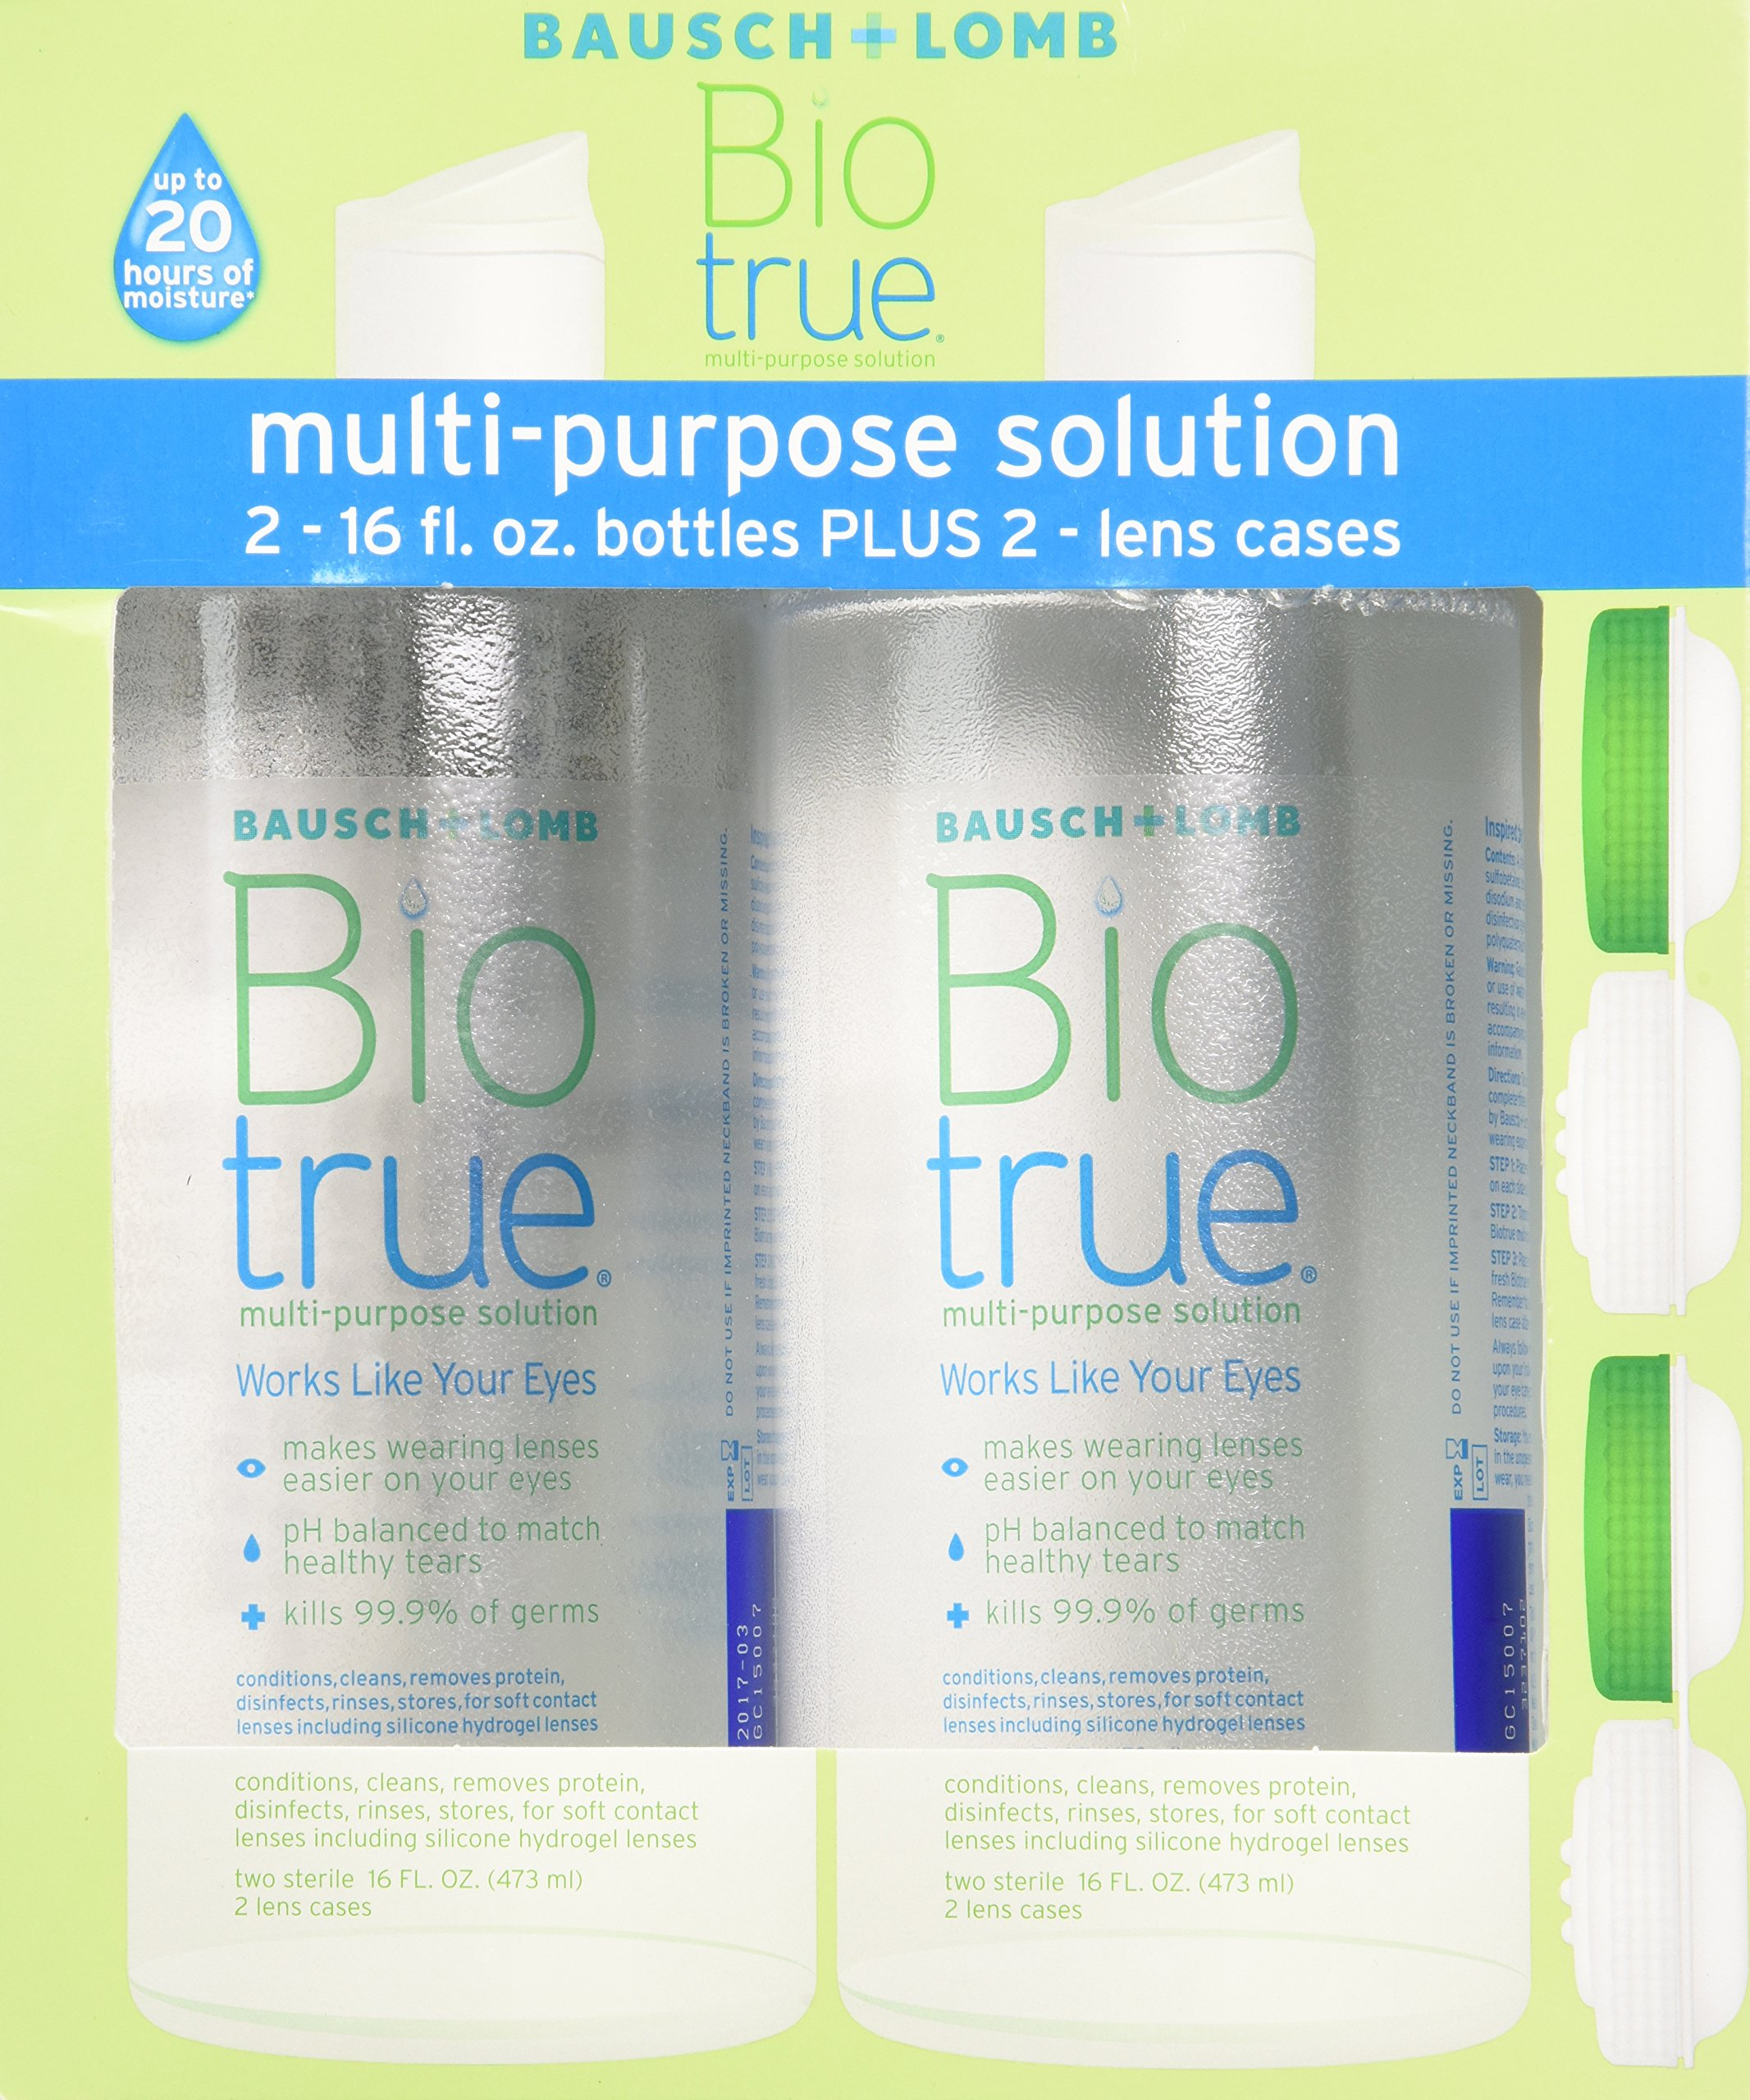 Bausch & Lomb Biotrue Multi-Purpose Solution - 2/16 oz Bottles Plus 2 lens cases